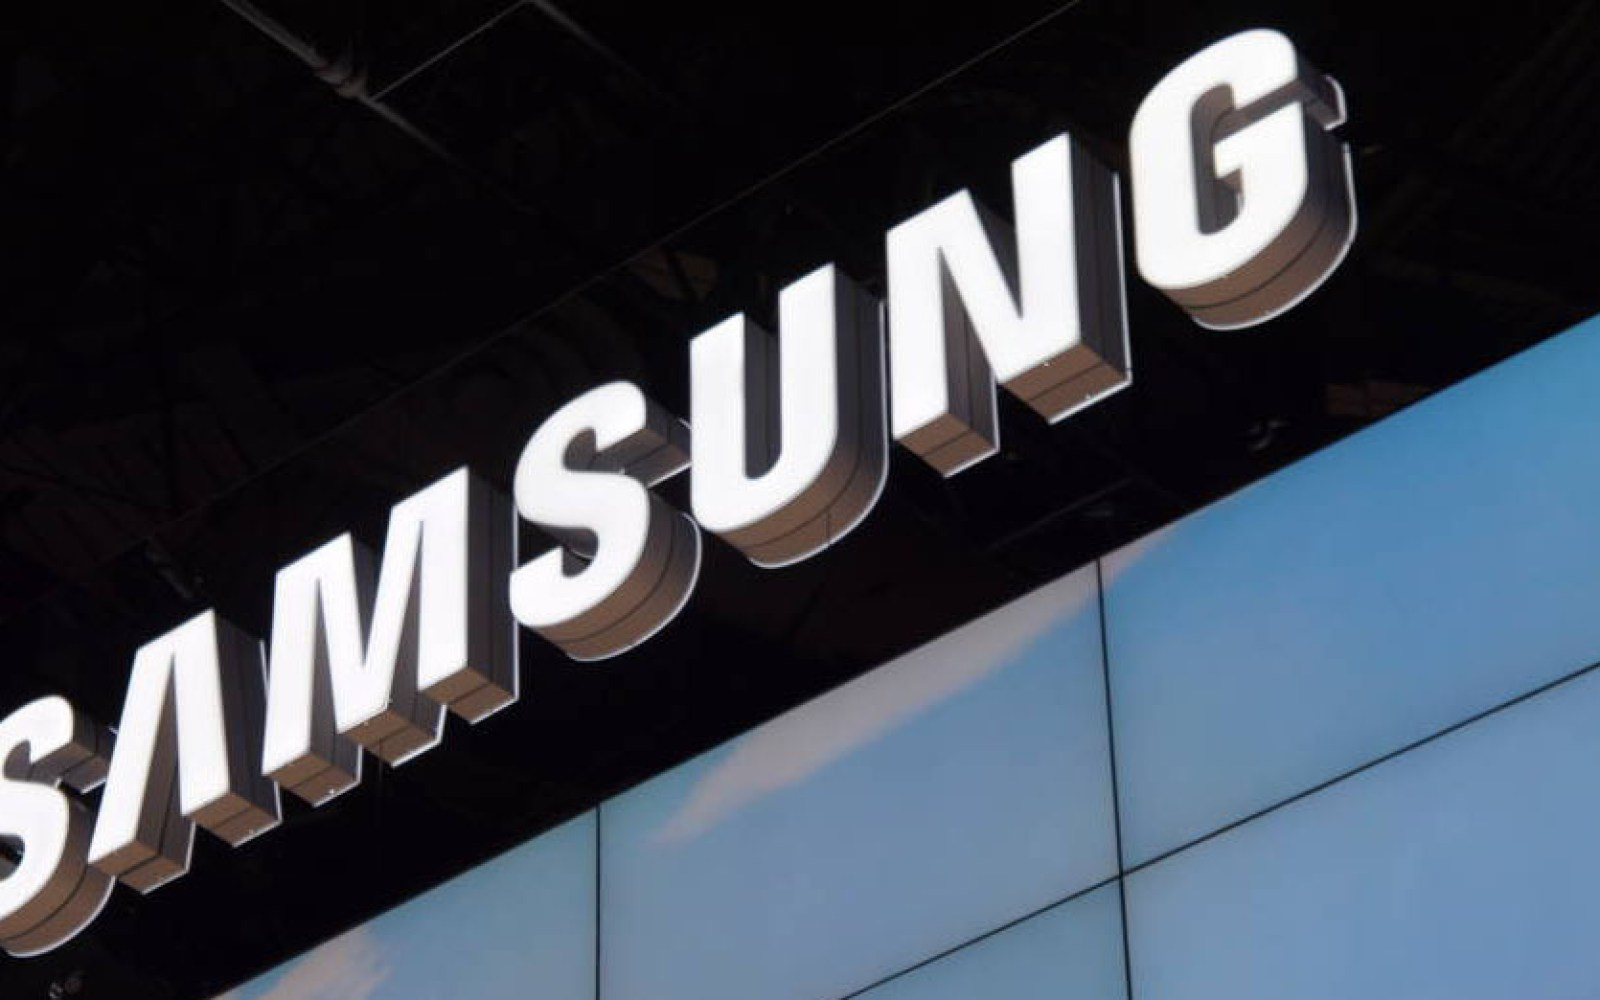 Samsung wanted Google to do its dirty work in attacking Apple